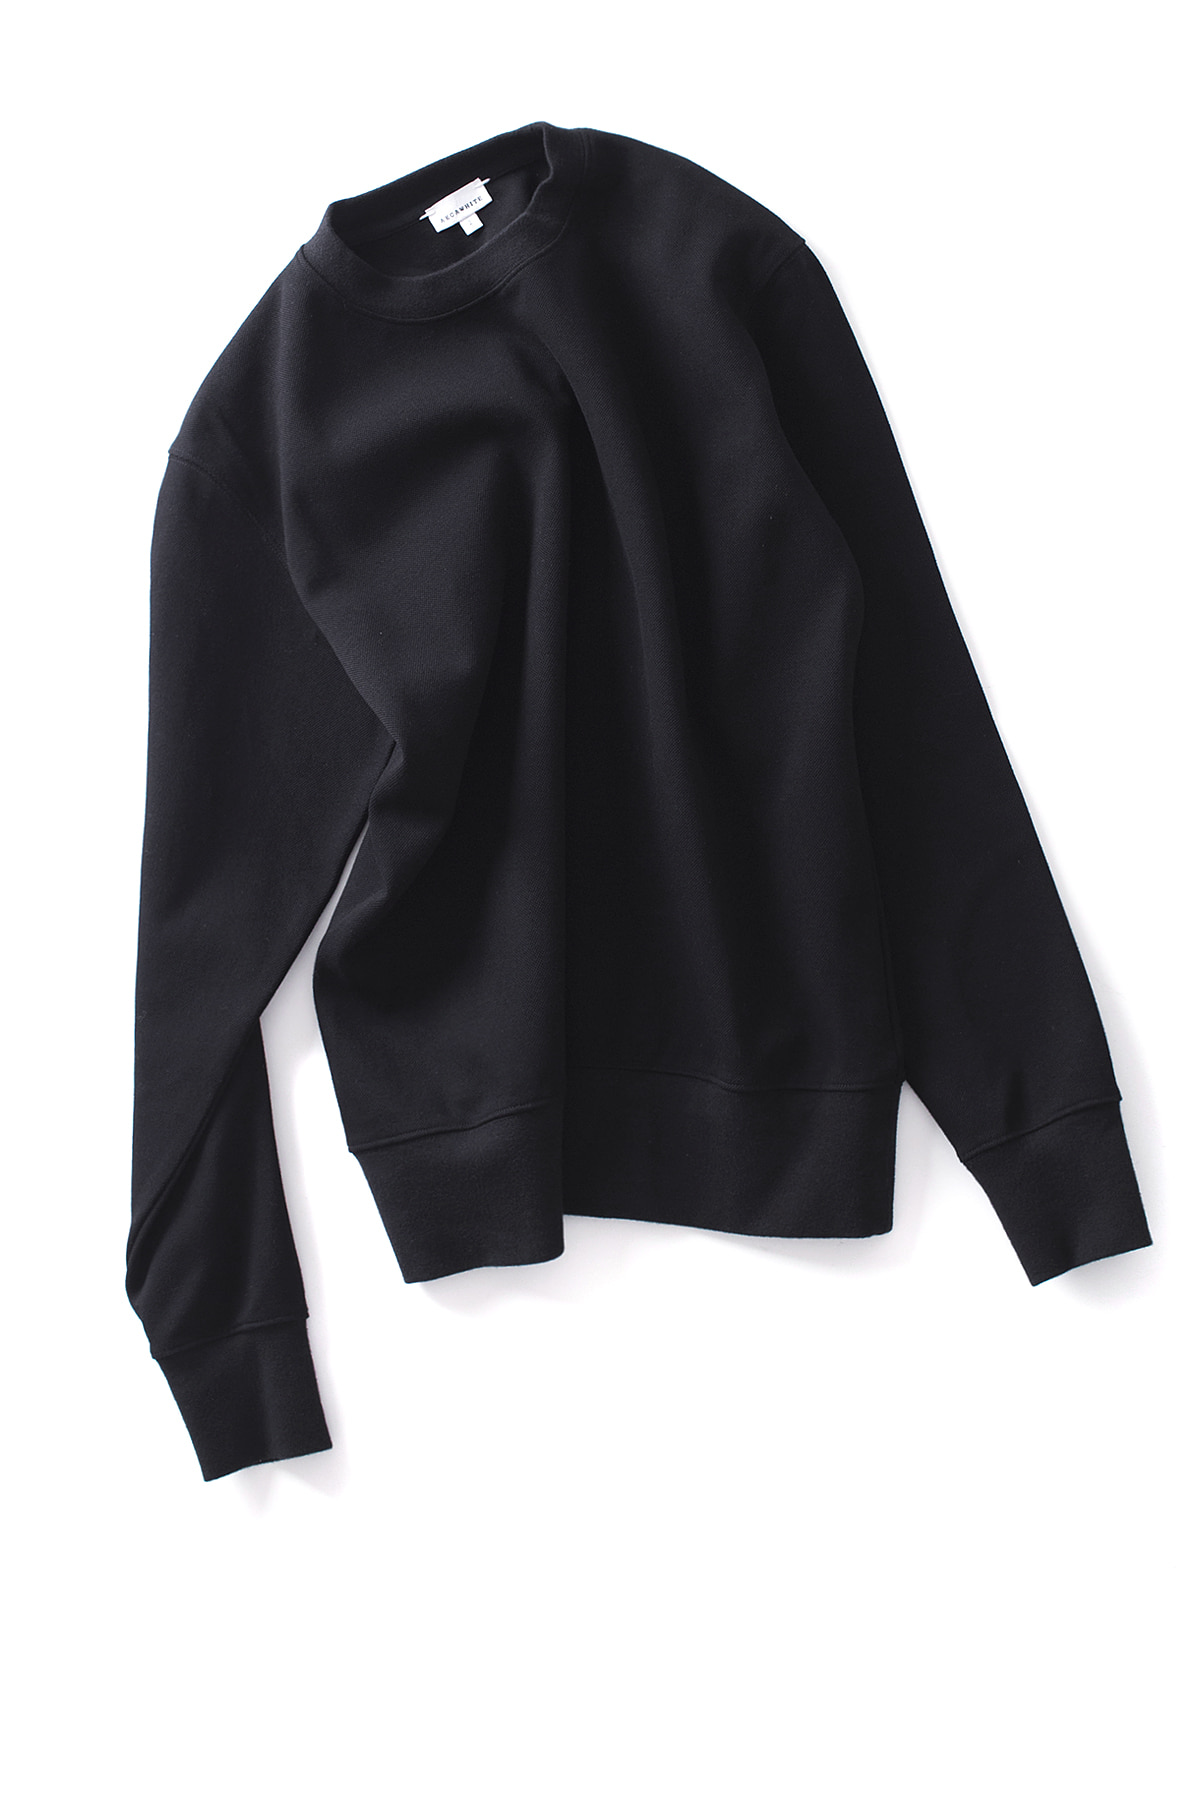 AECA WHITE : Sweatshirt (Black)